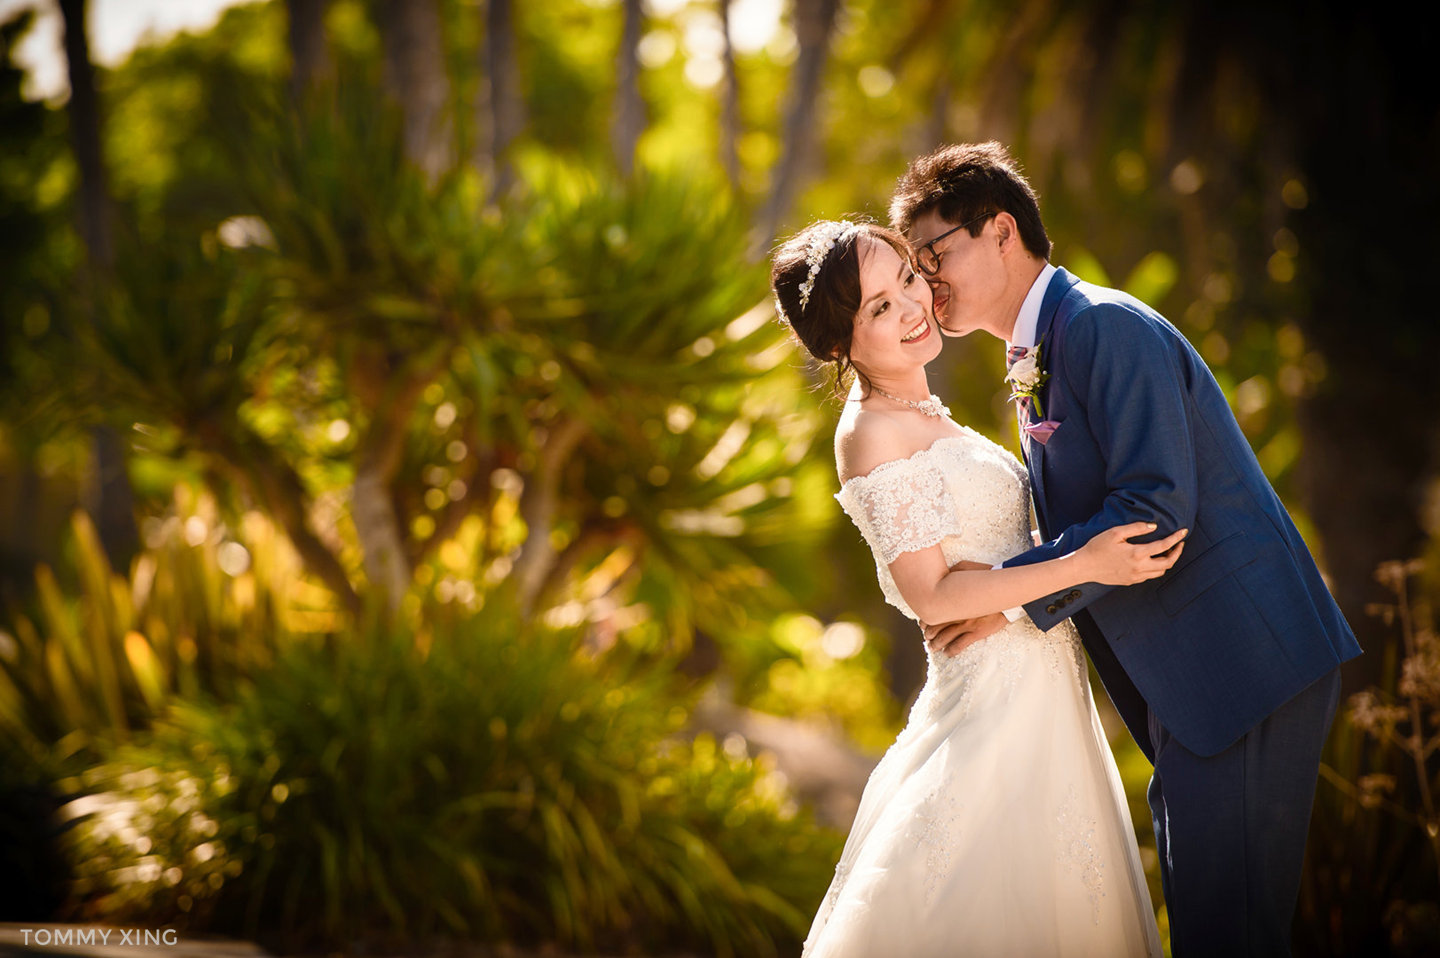 Paradise Point Resort Wedding Xiaolu & Bin San Diego 圣地亚哥婚礼摄影跟拍 Tommy Xing Photography 洛杉矶婚礼婚纱照摄影师 068.jpg